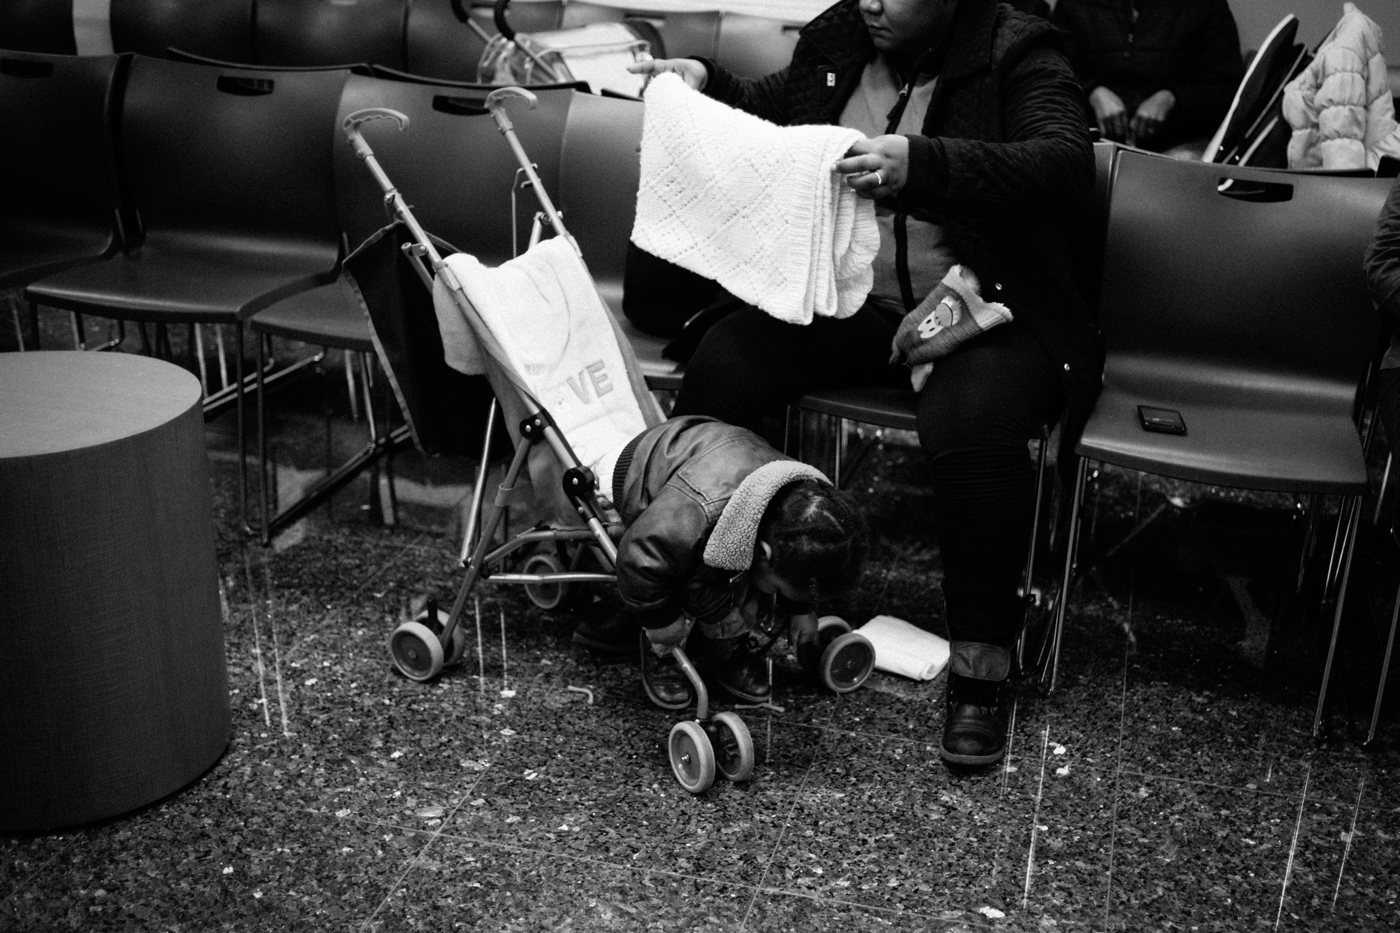 A baby leans over in a stroller as his mother waits to speak with a lawyer at Catholic Charities Community Service's walk-in immigration aid day in New York, NY on March 9, 2017. CREDIT: Mark Kauzlarich for CNN